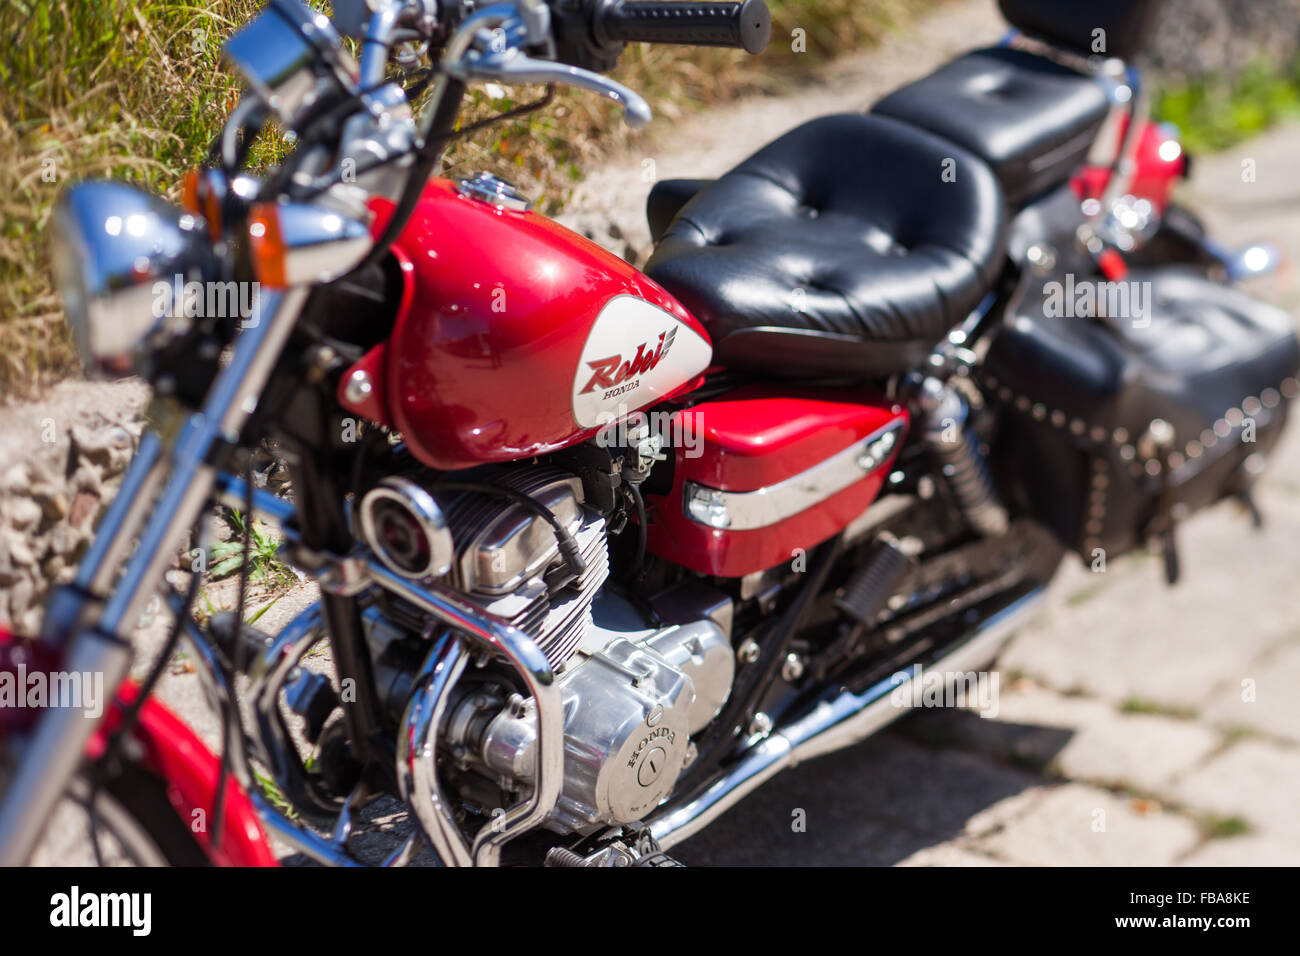 Classic motorcycle, close up view, depth of field effect Stock Photo